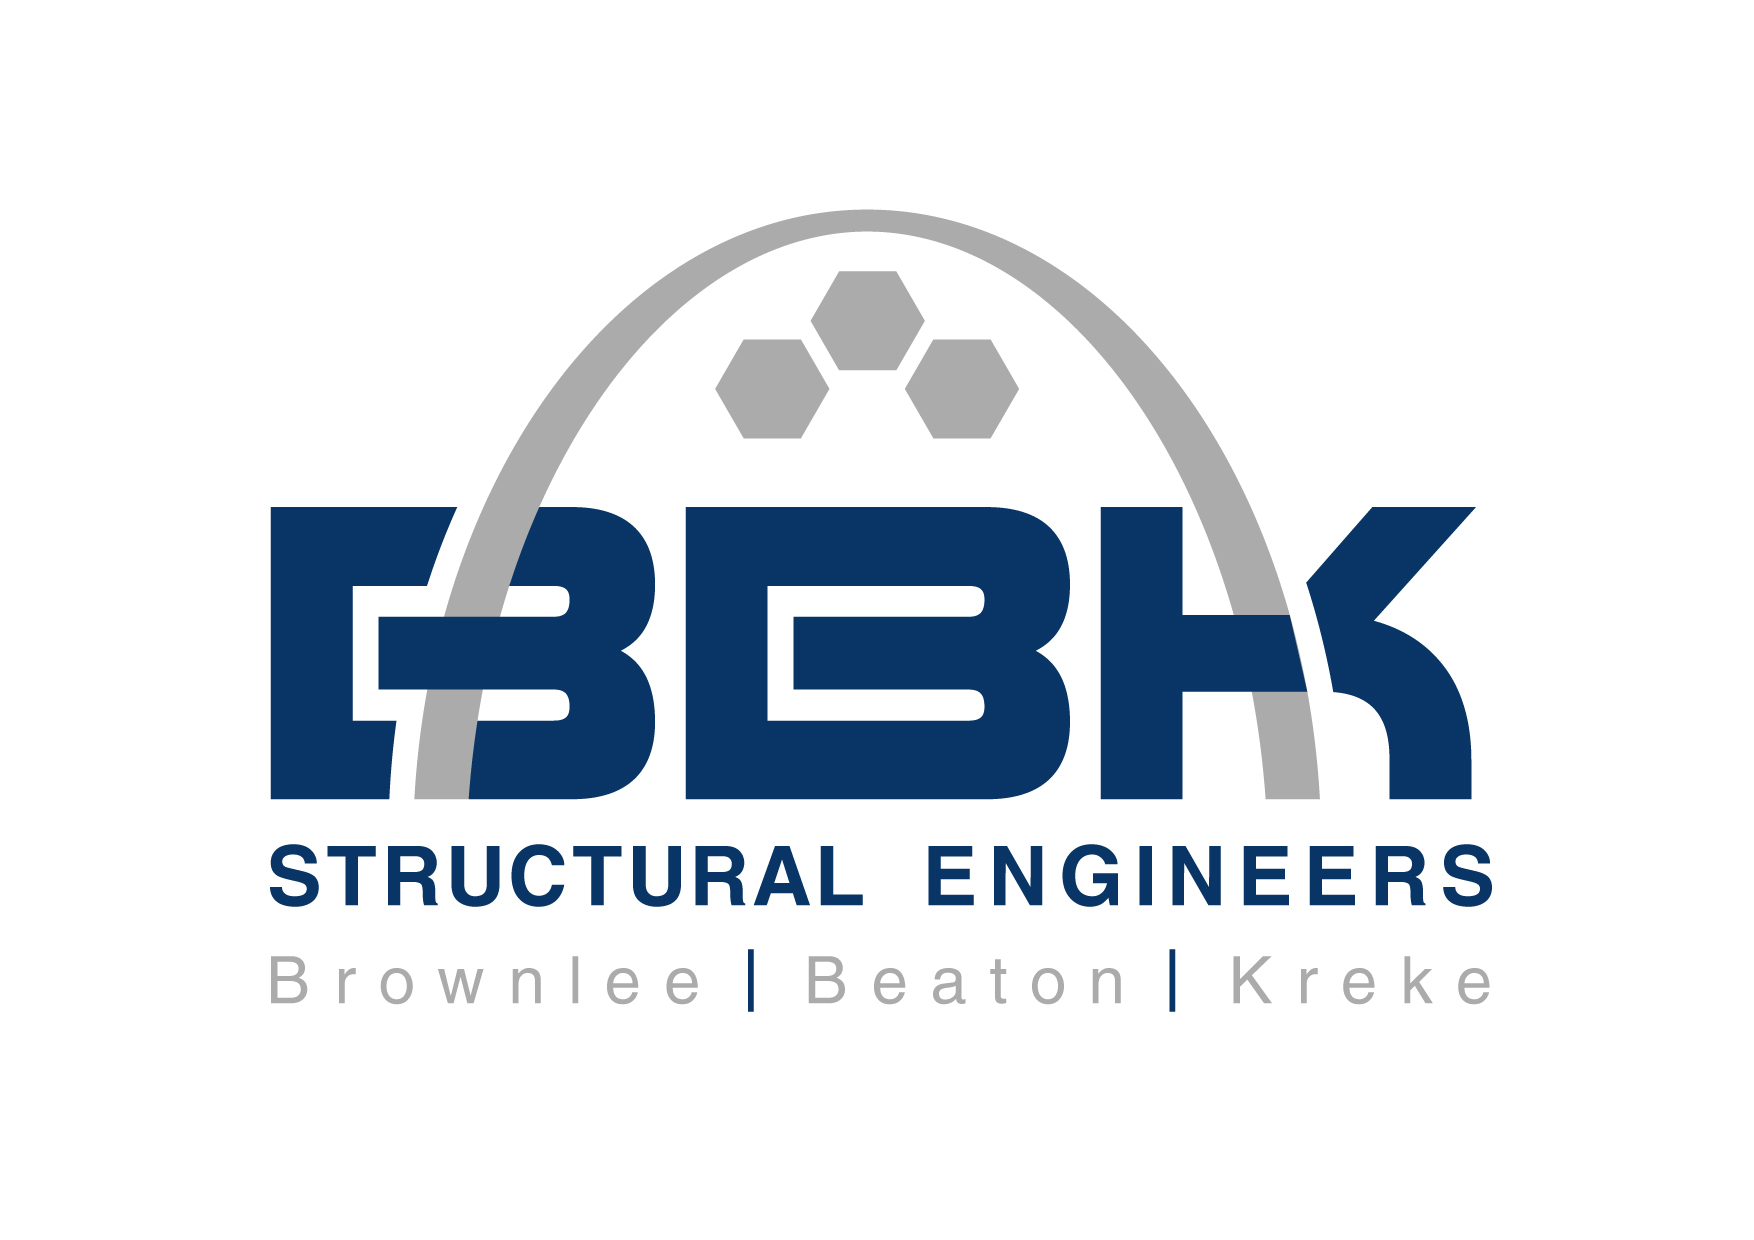 Logo Design by Wilfredo Mendoza - Entry No. 172 in the Logo Design Contest Logo Design Needed for Exciting New Company BBK Consulting Engineers.